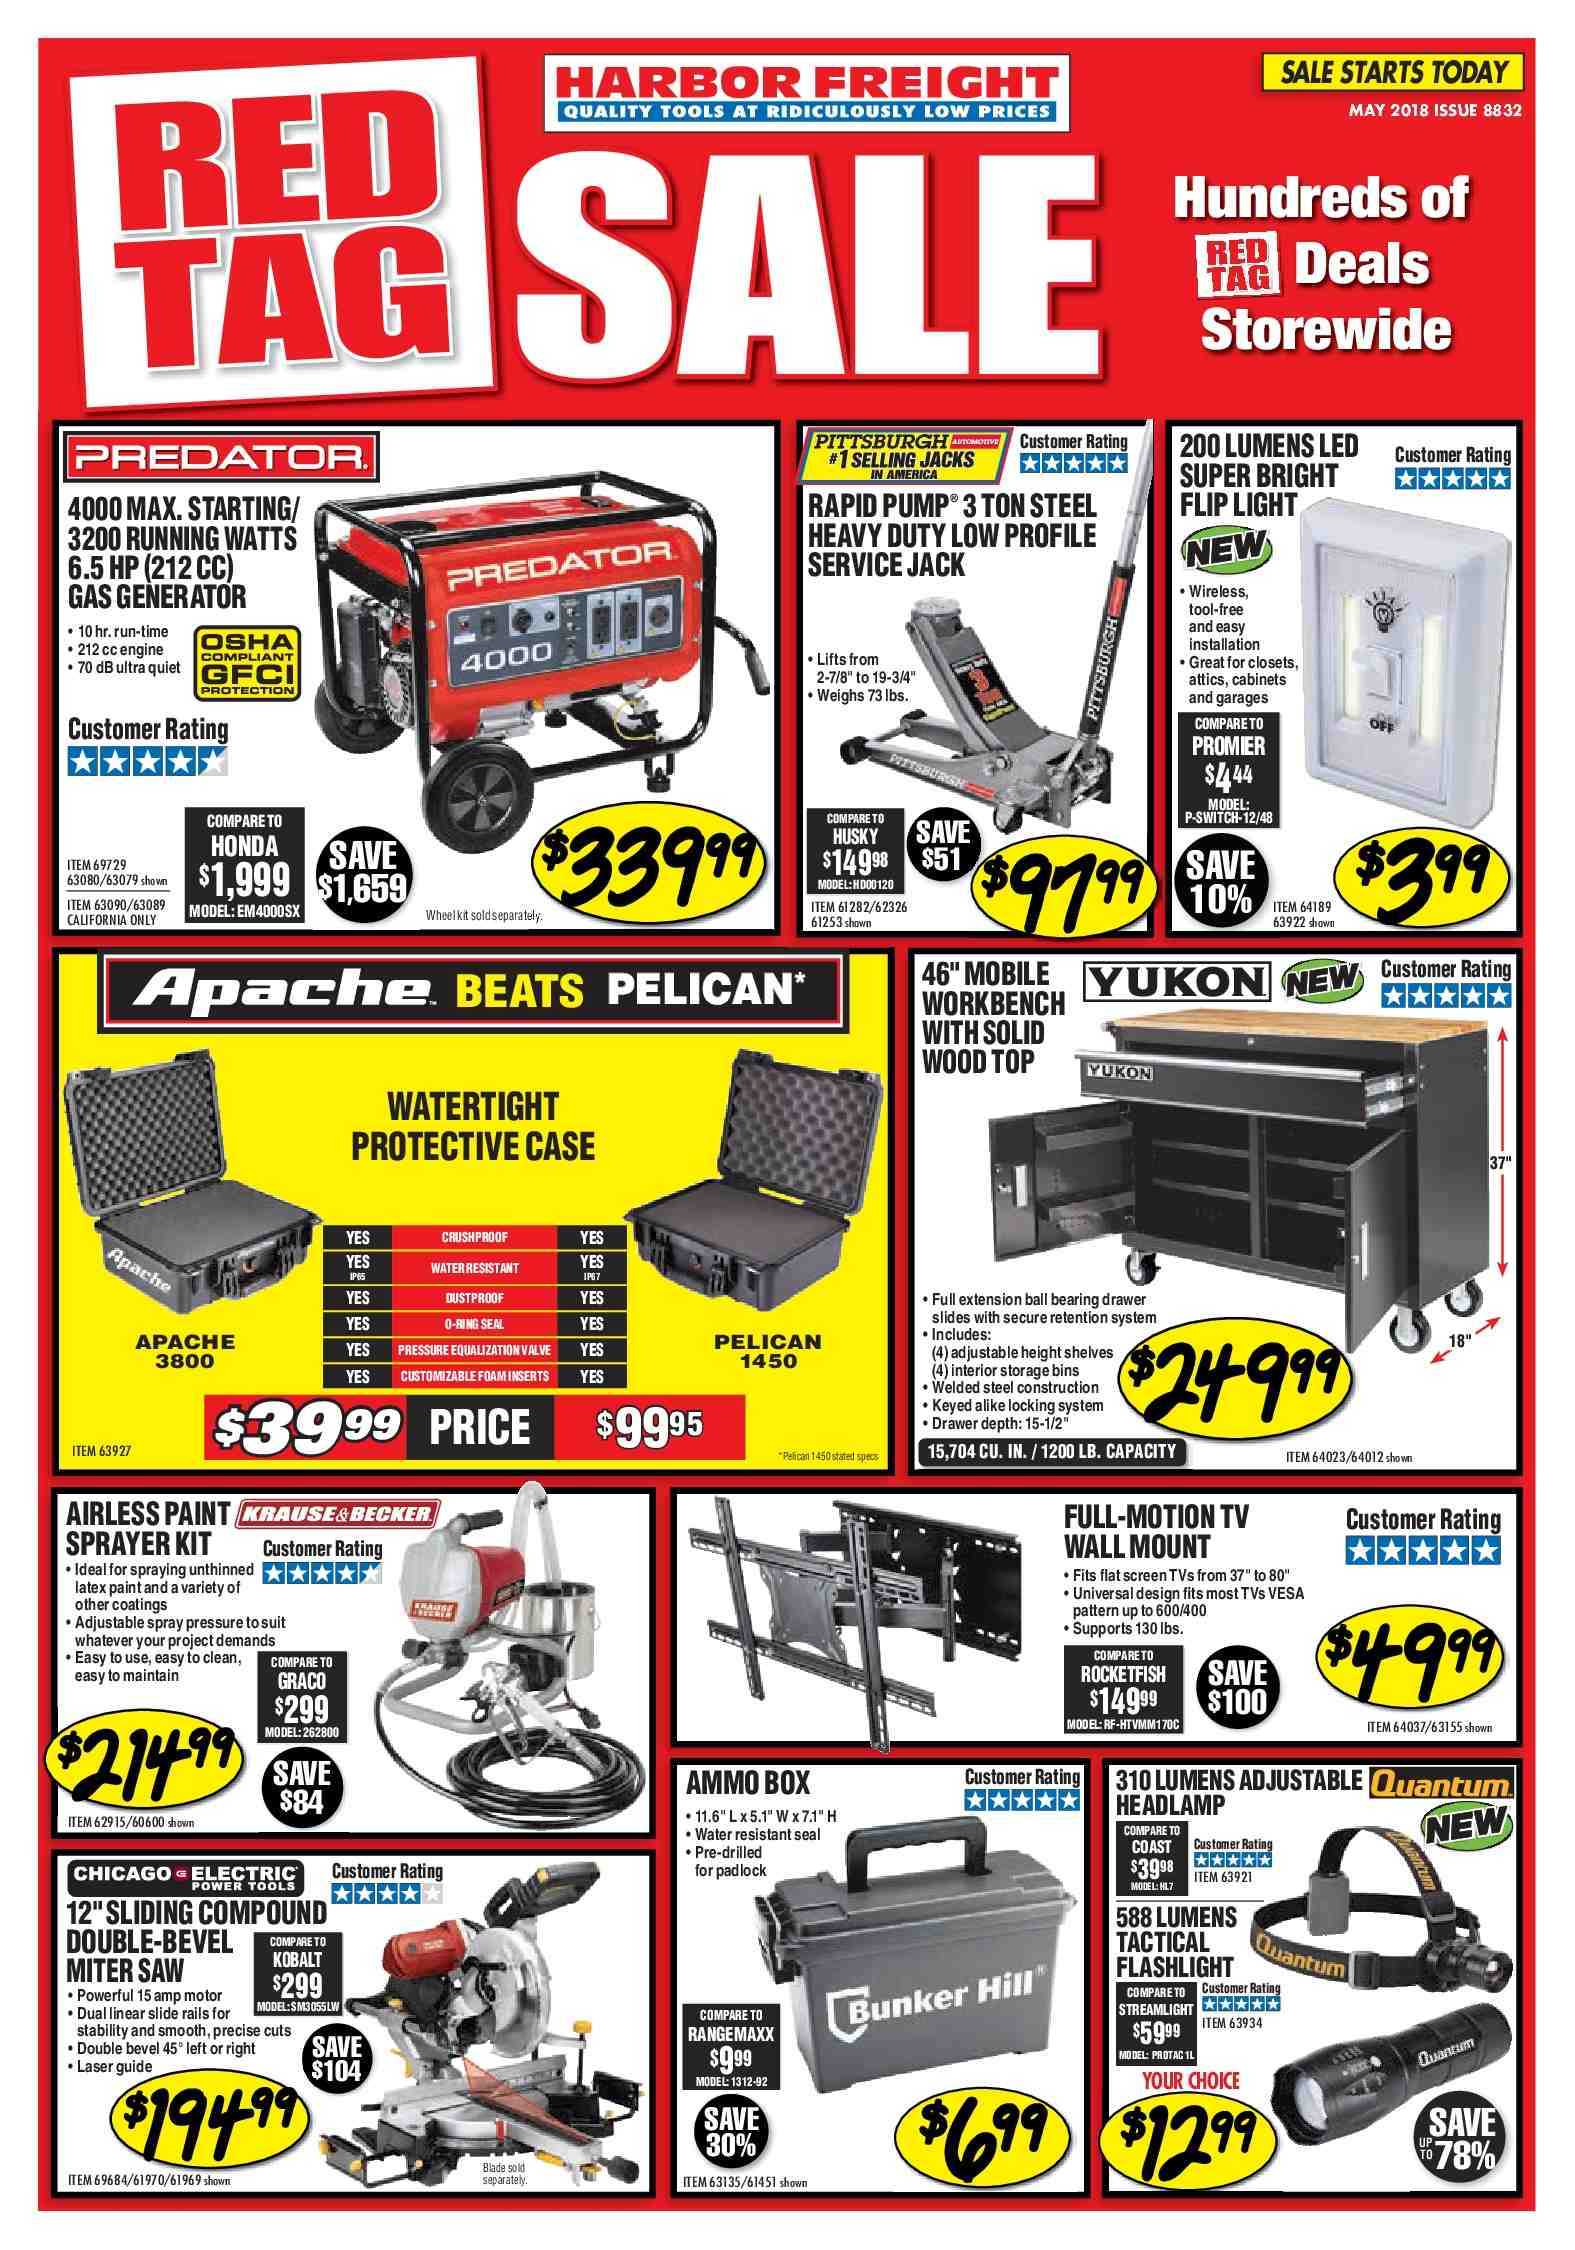 Harbor Freight Flyer  - 05.01.2018 - 05.31.2018. Page 1.